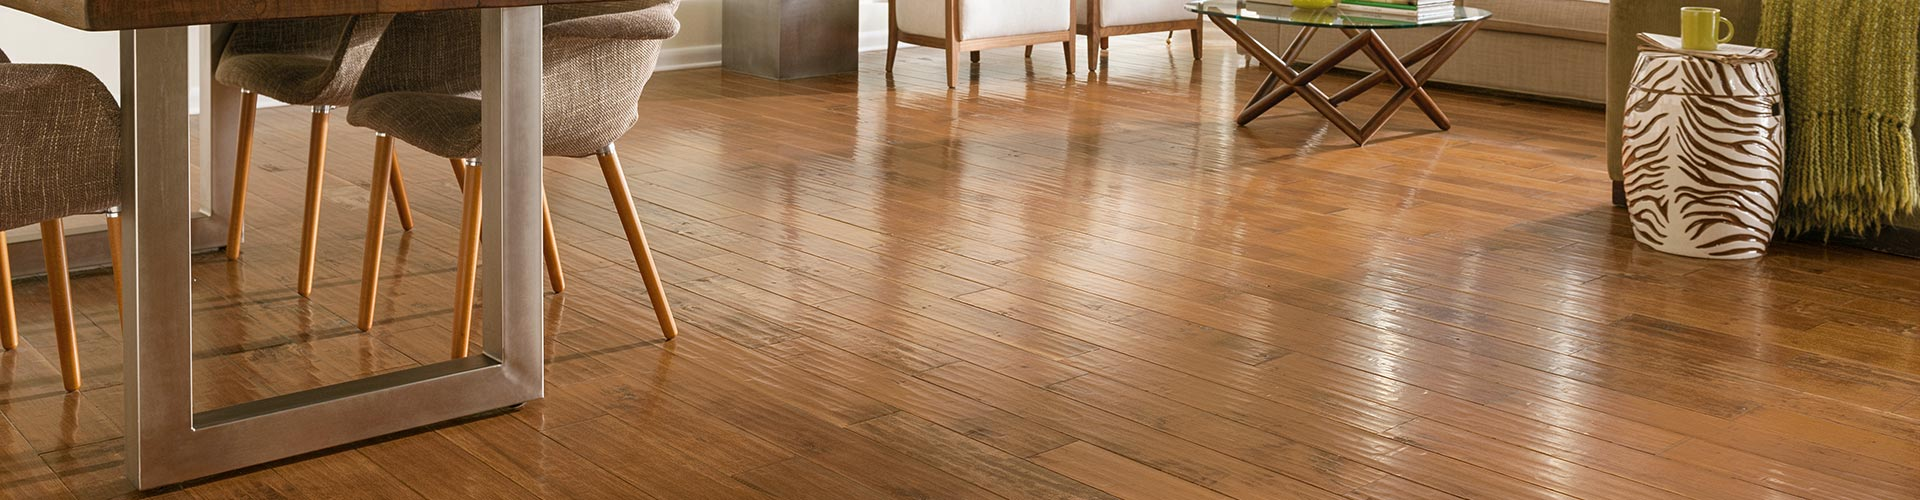 Solid Wood Flooring, Carpet Installation, Ceramic Tile & Flooring in ...